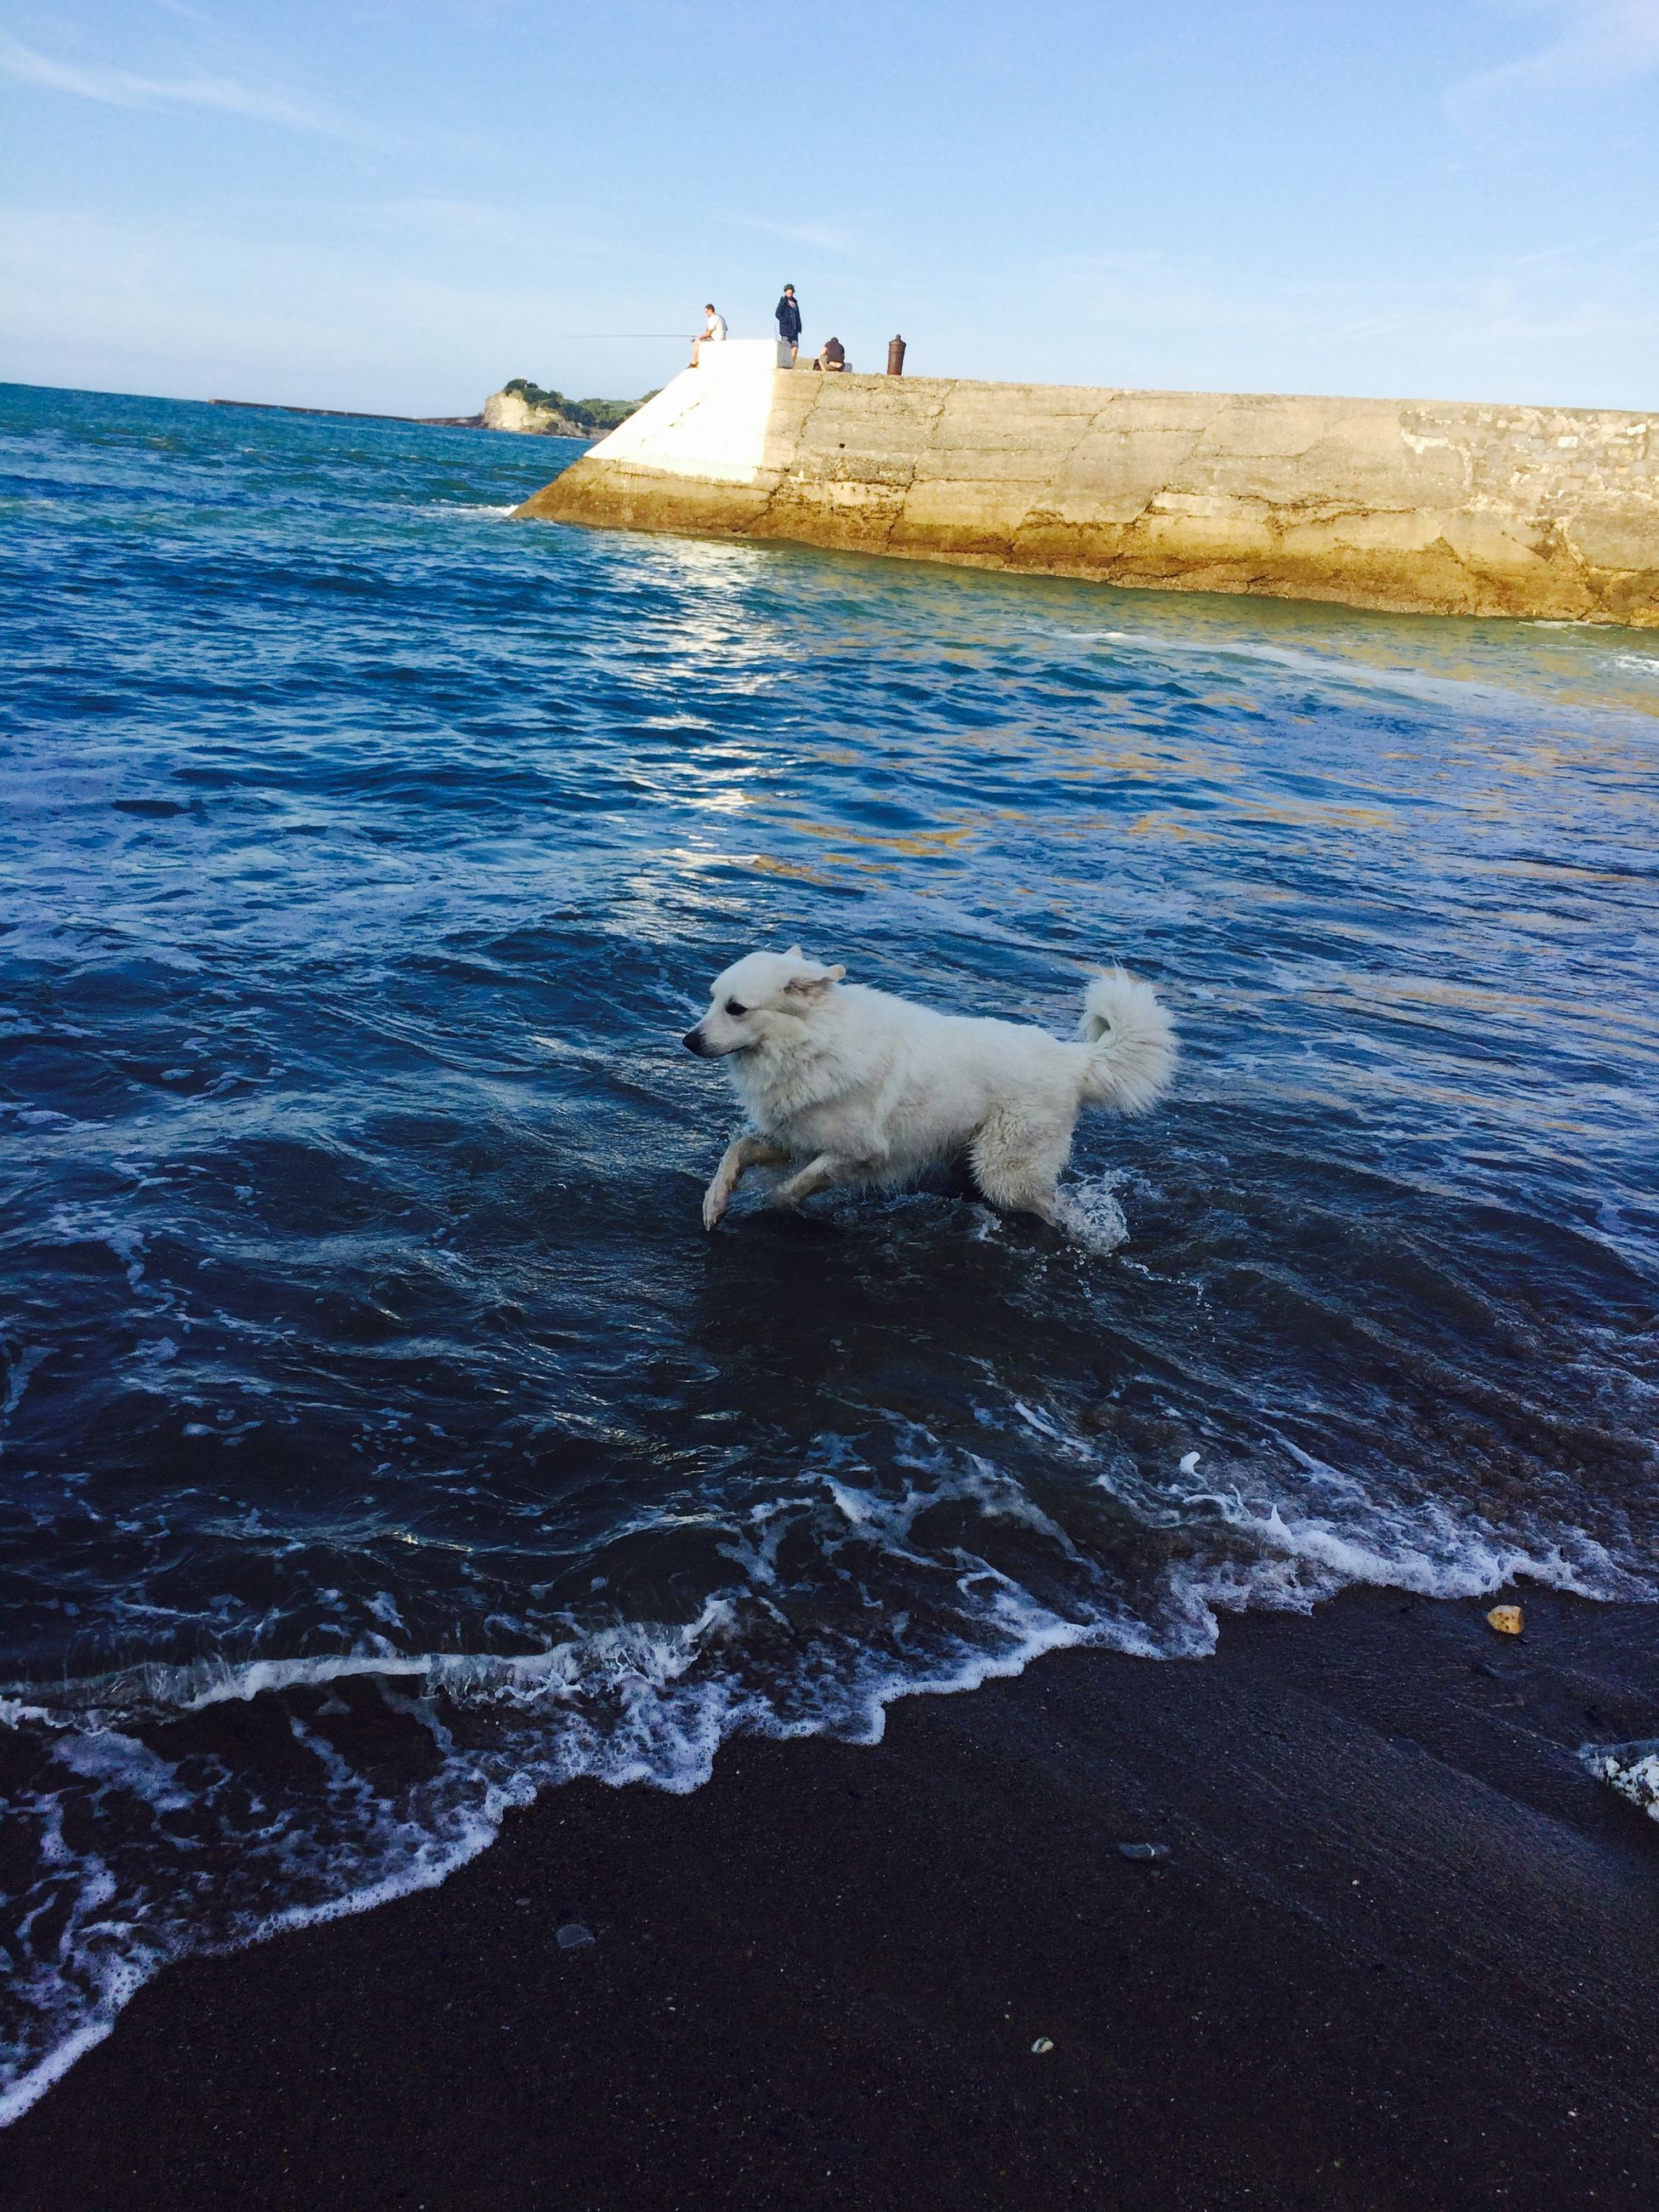 water, animal themes, sea, one animal, dog, mammal, pets, domestic animals, beach, seagull, animals in the wild, wildlife, bird, nature, blue, sky, wave, shore, swimming, rippled